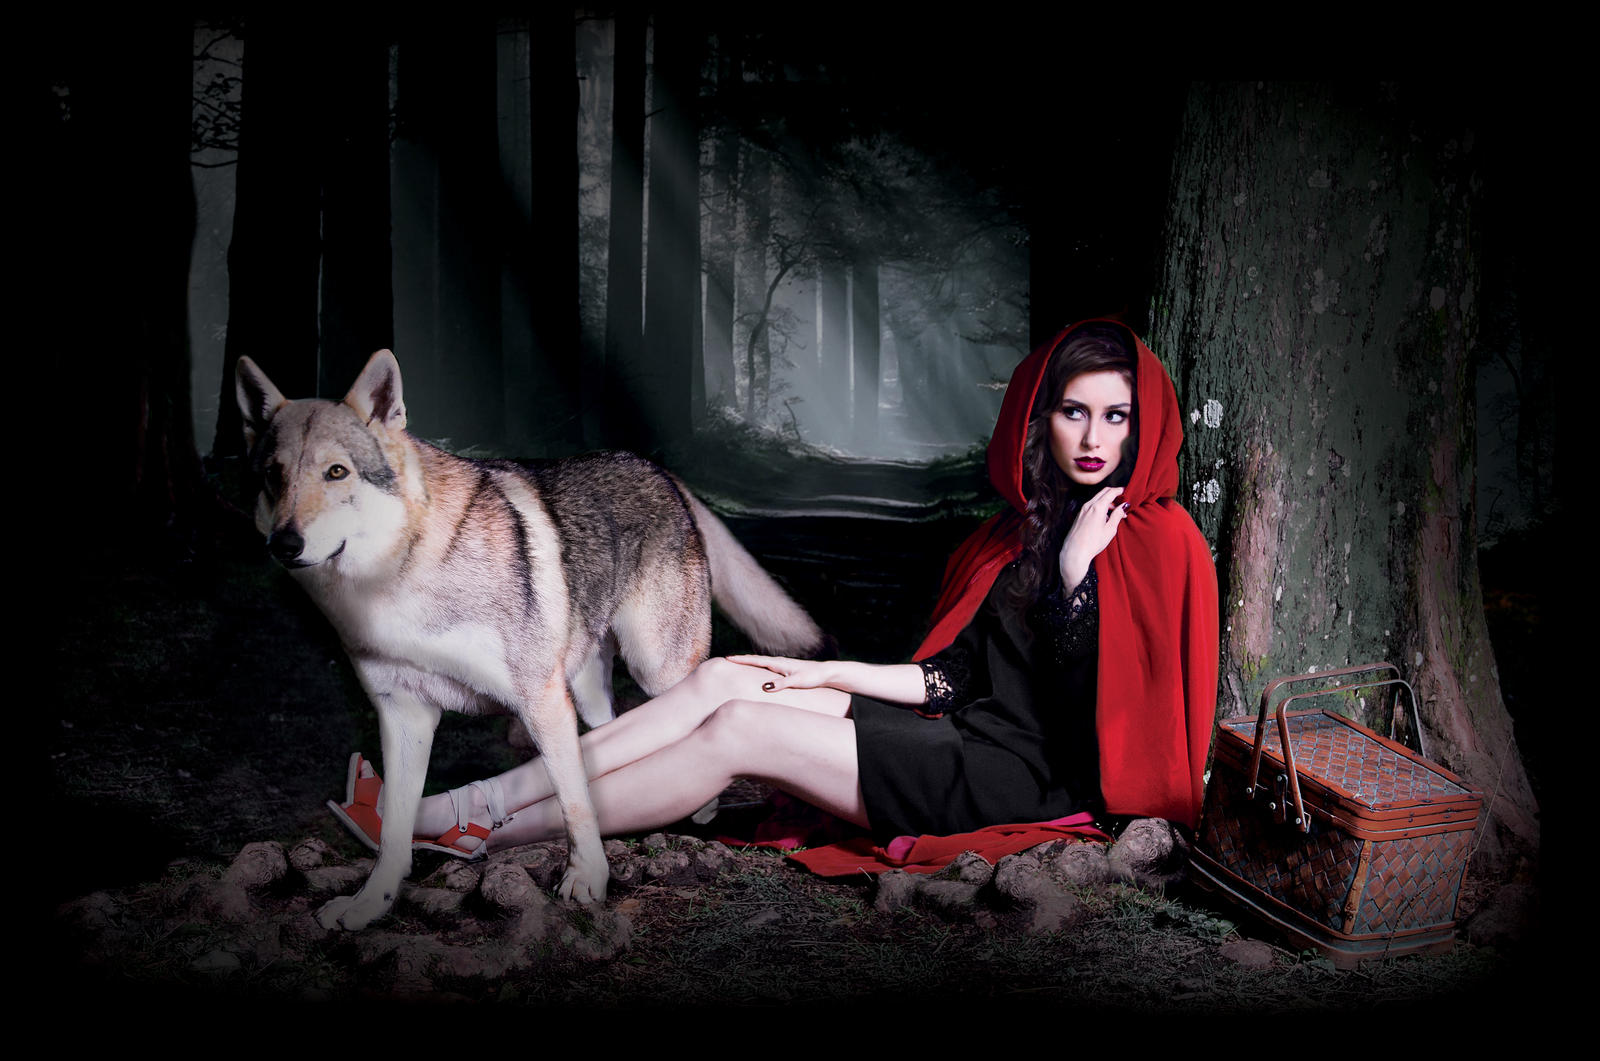 onde upon a one little red riding and wolf evil by hikari studio on deviantart